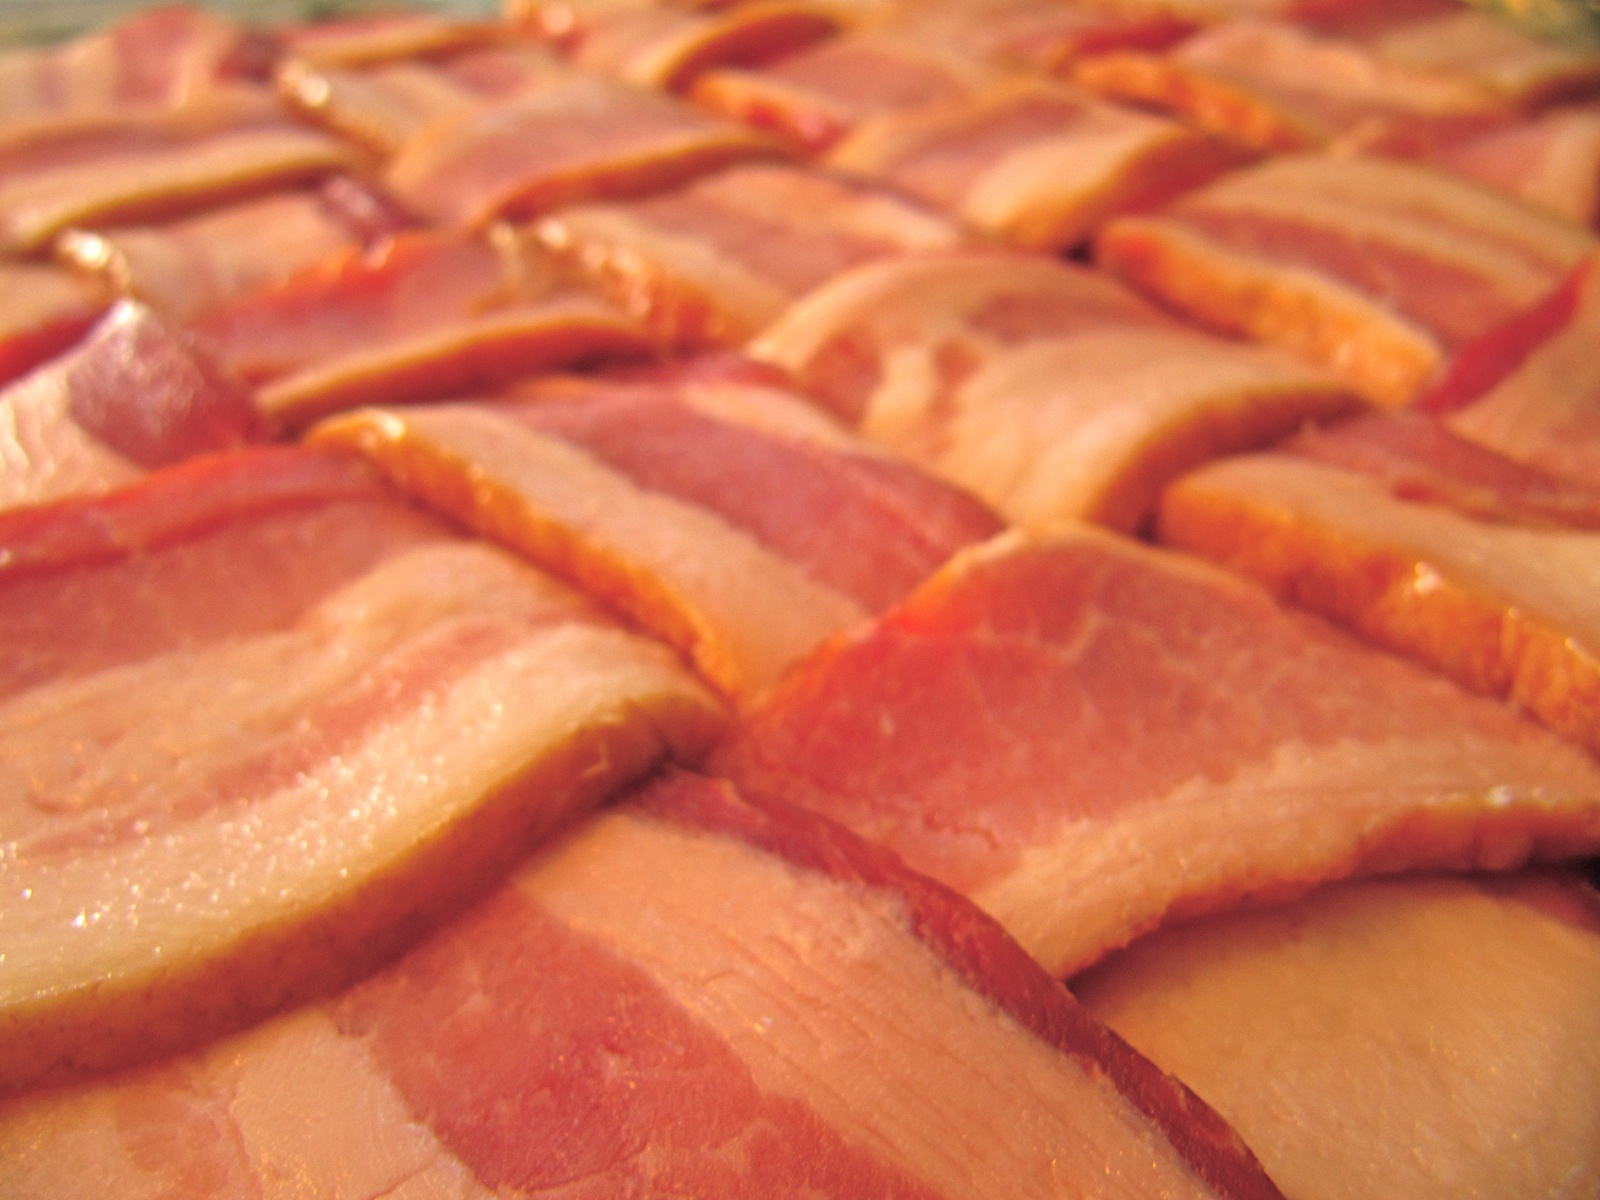 A raw bacon weave, ready to be wrapped around something